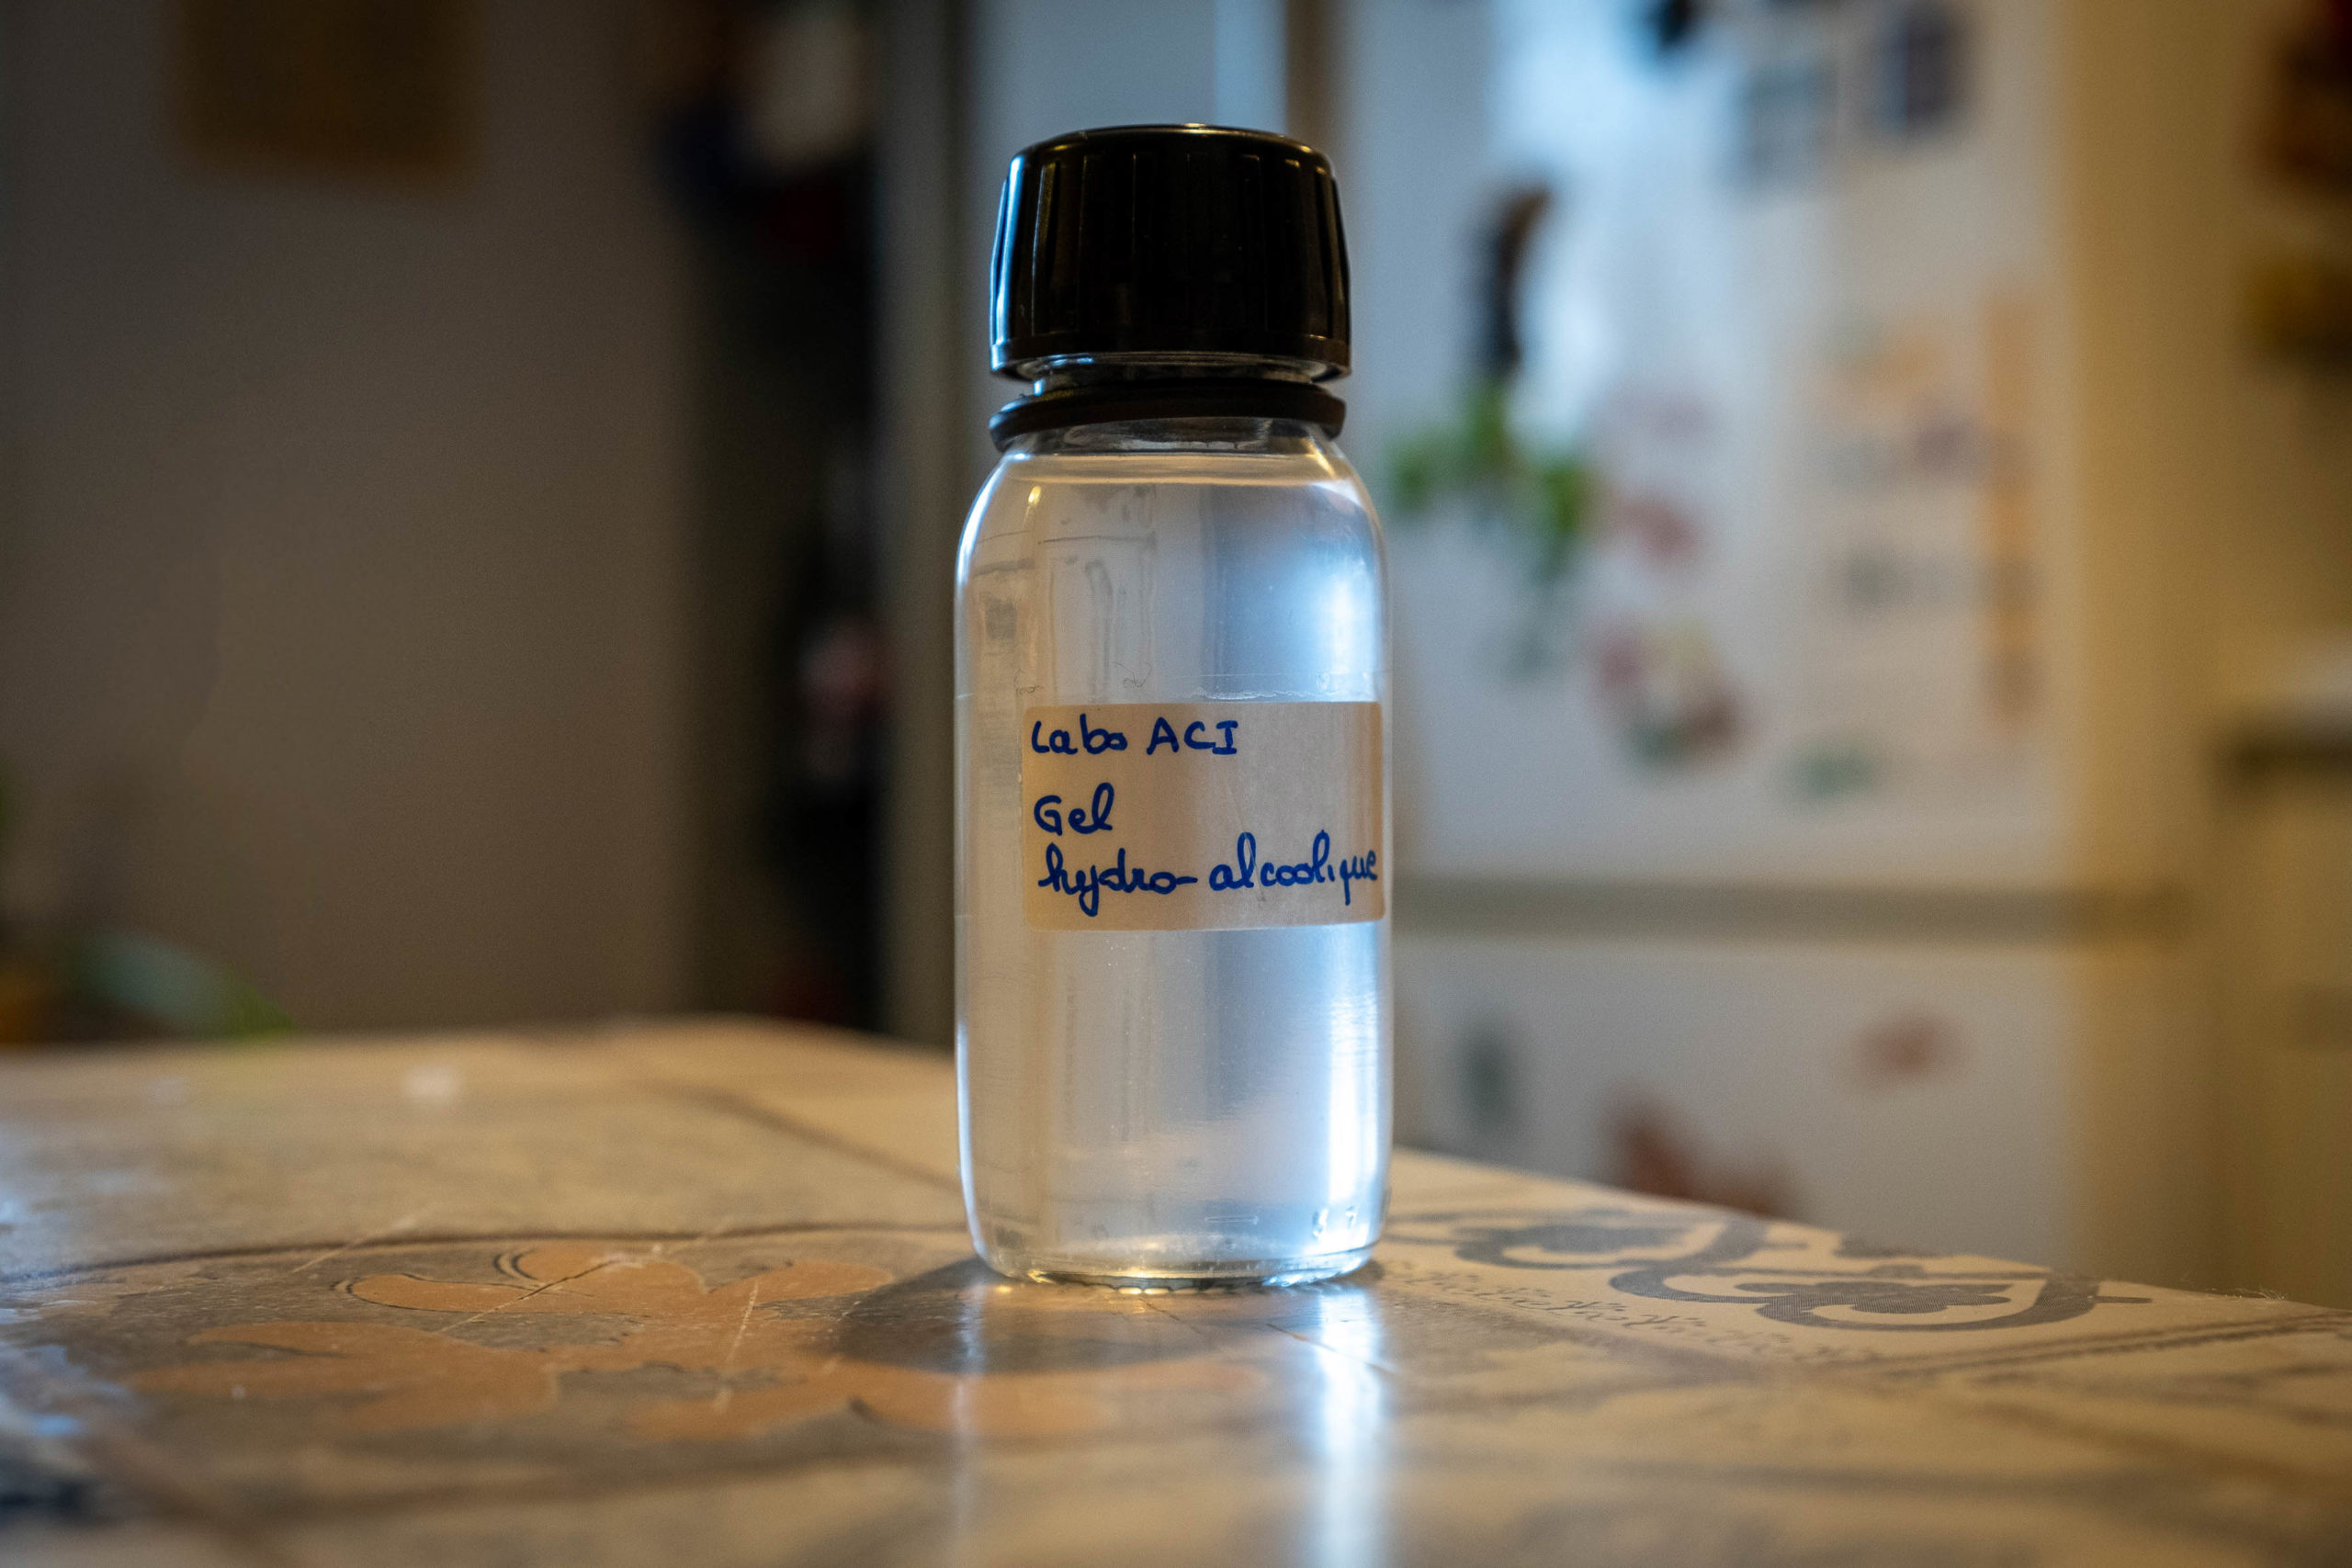 In France, it is still possible to buy hydroalcoholic gel in pharmacies but in limited quantities (illustration). Saone-et-Loire, 27 March 2020. En France, il est toujours possible d'acheter du gel hydro alcoolique en pharmacie mais en quantité limitée (illustration). Saone-et-Loire, 27 mars 2020